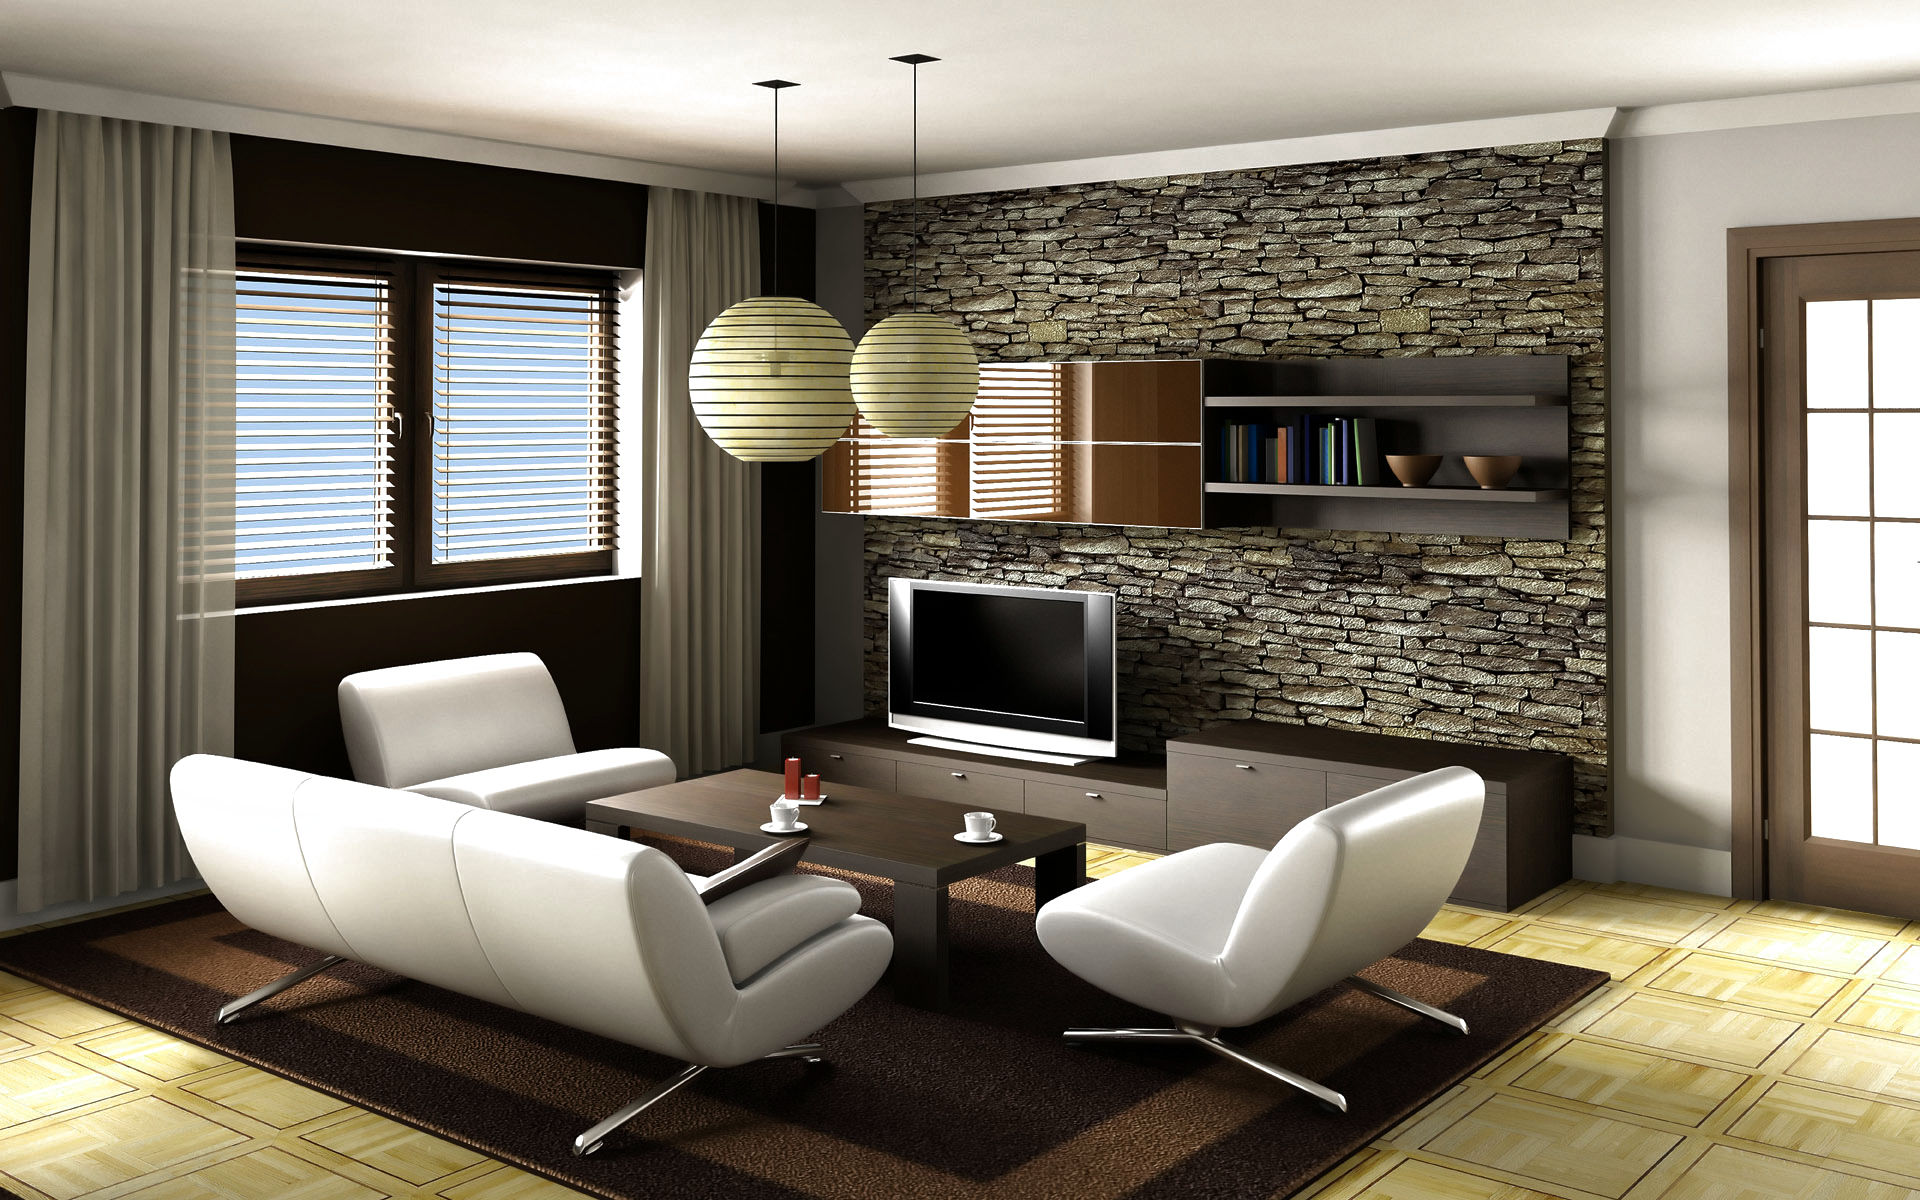 16 modern living room furniture ideas design hgnv com for Modern style living room furniture